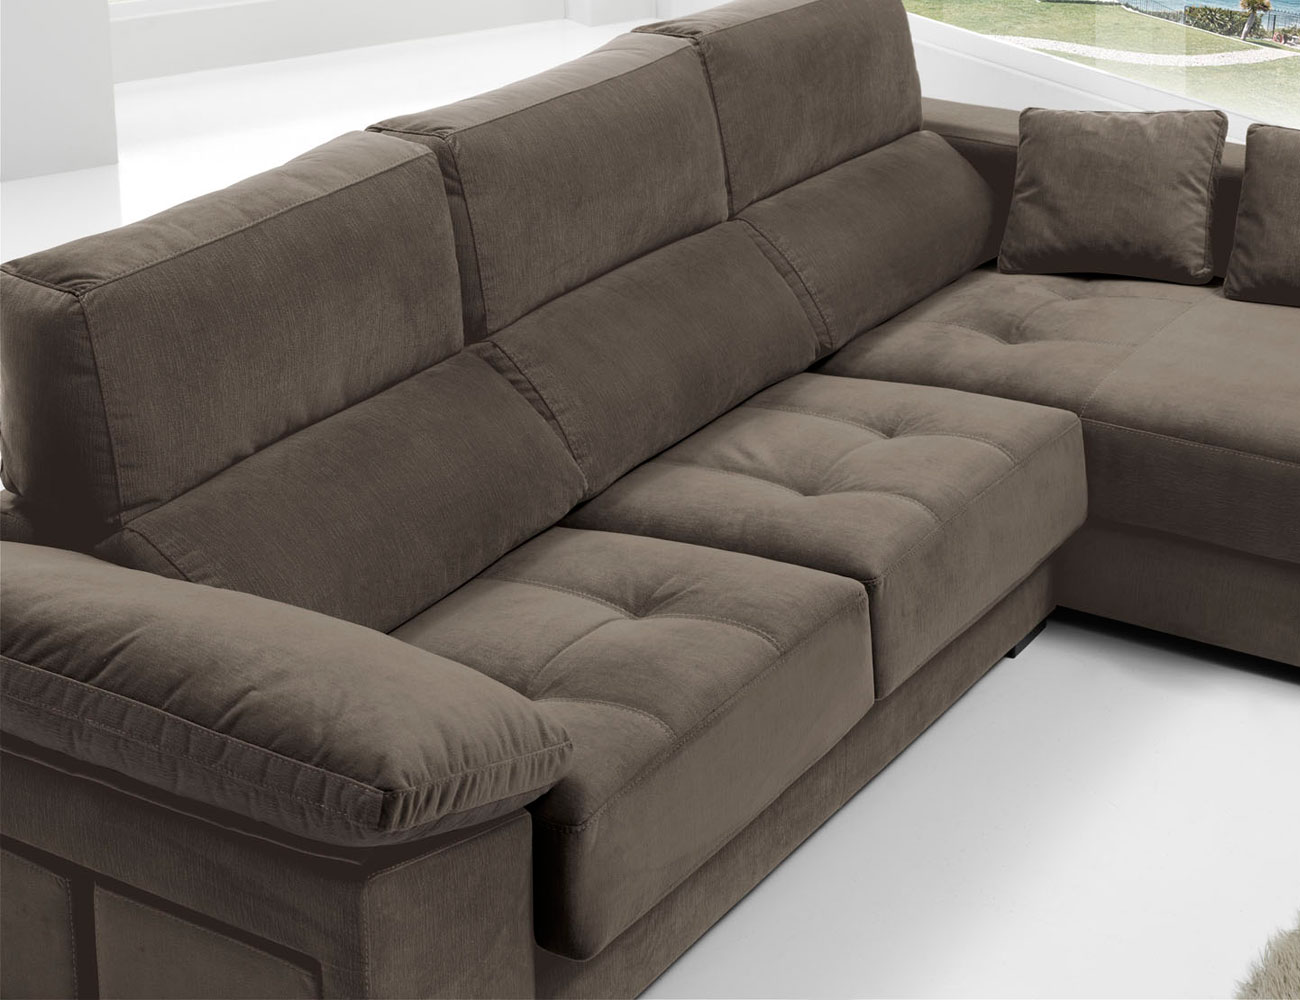 Sofa chaiselongue anti manchas bering pouf 255